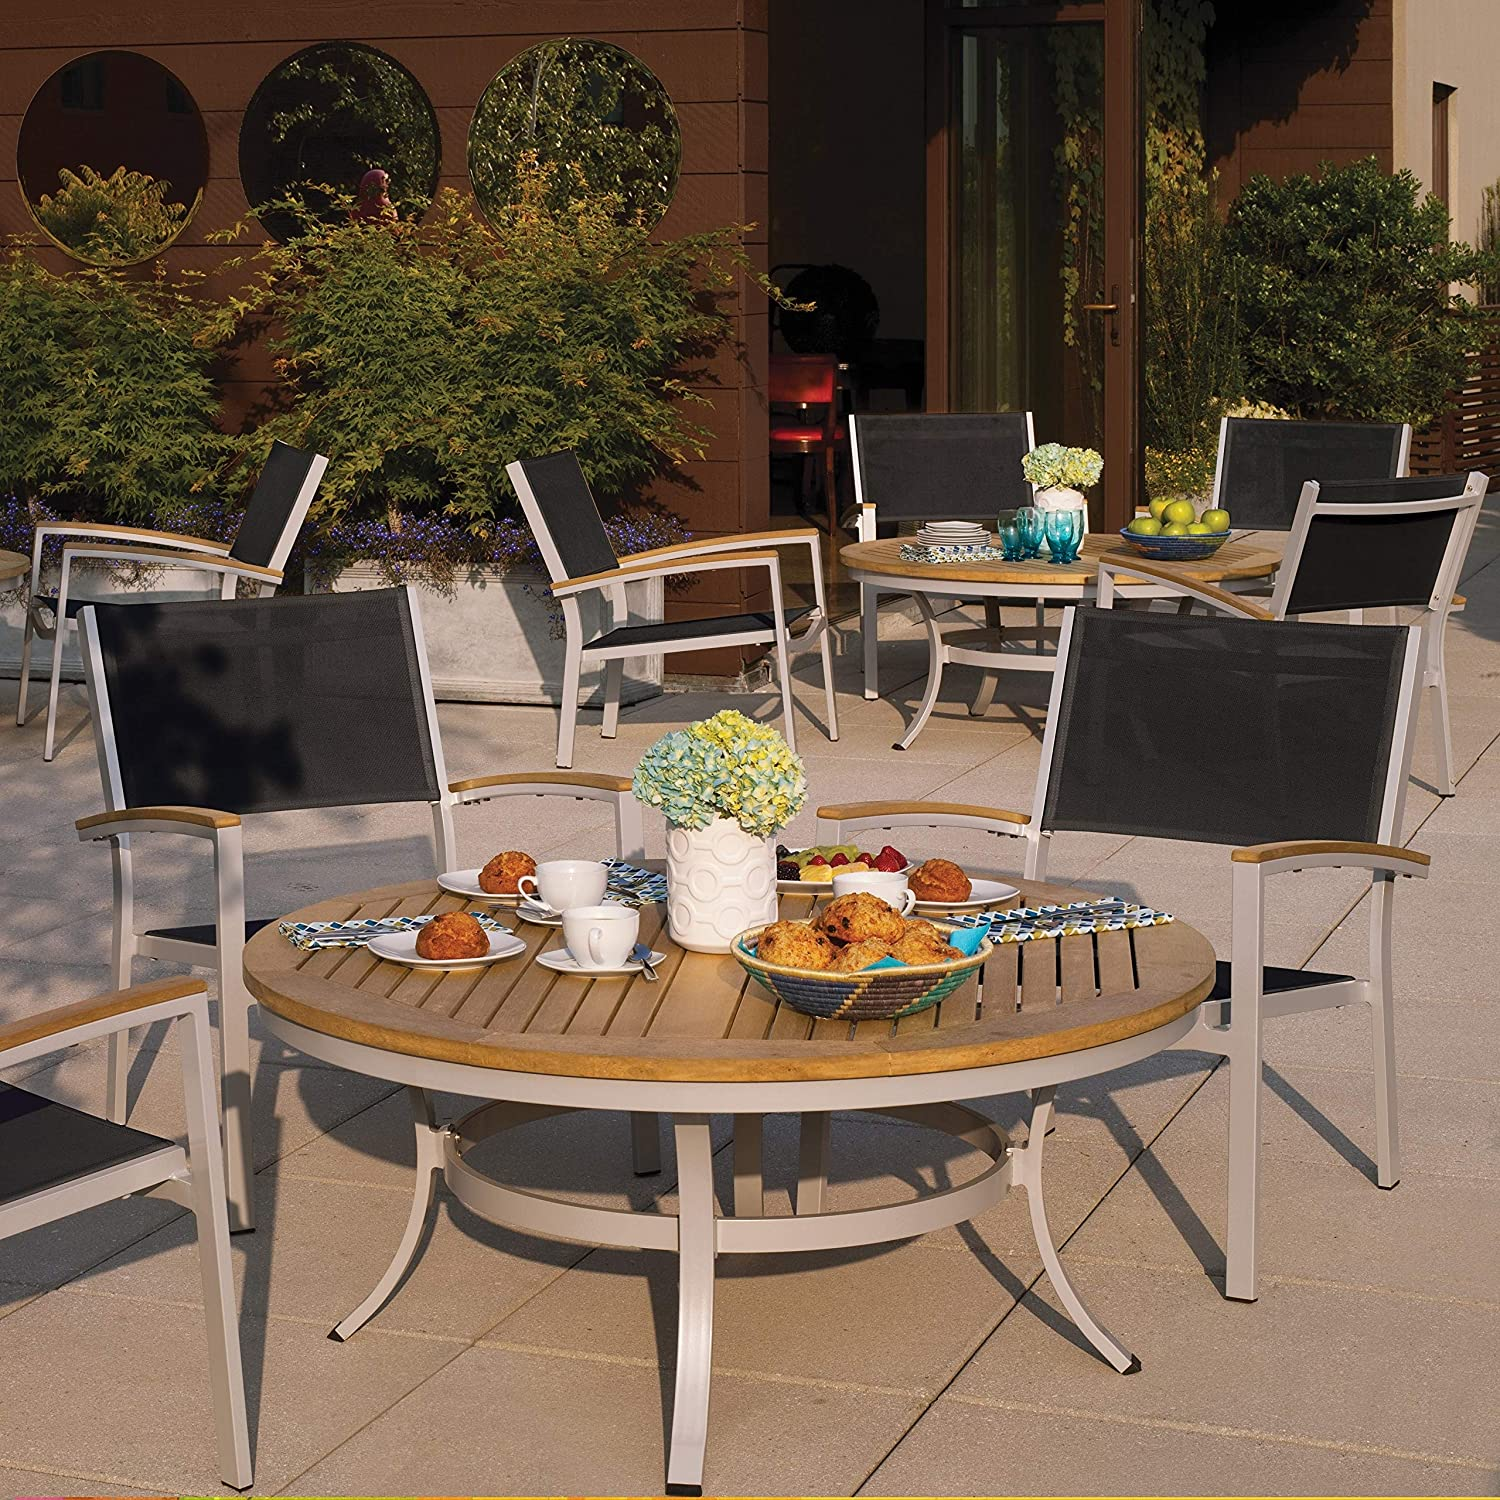 Design Cafe Garden Furniture